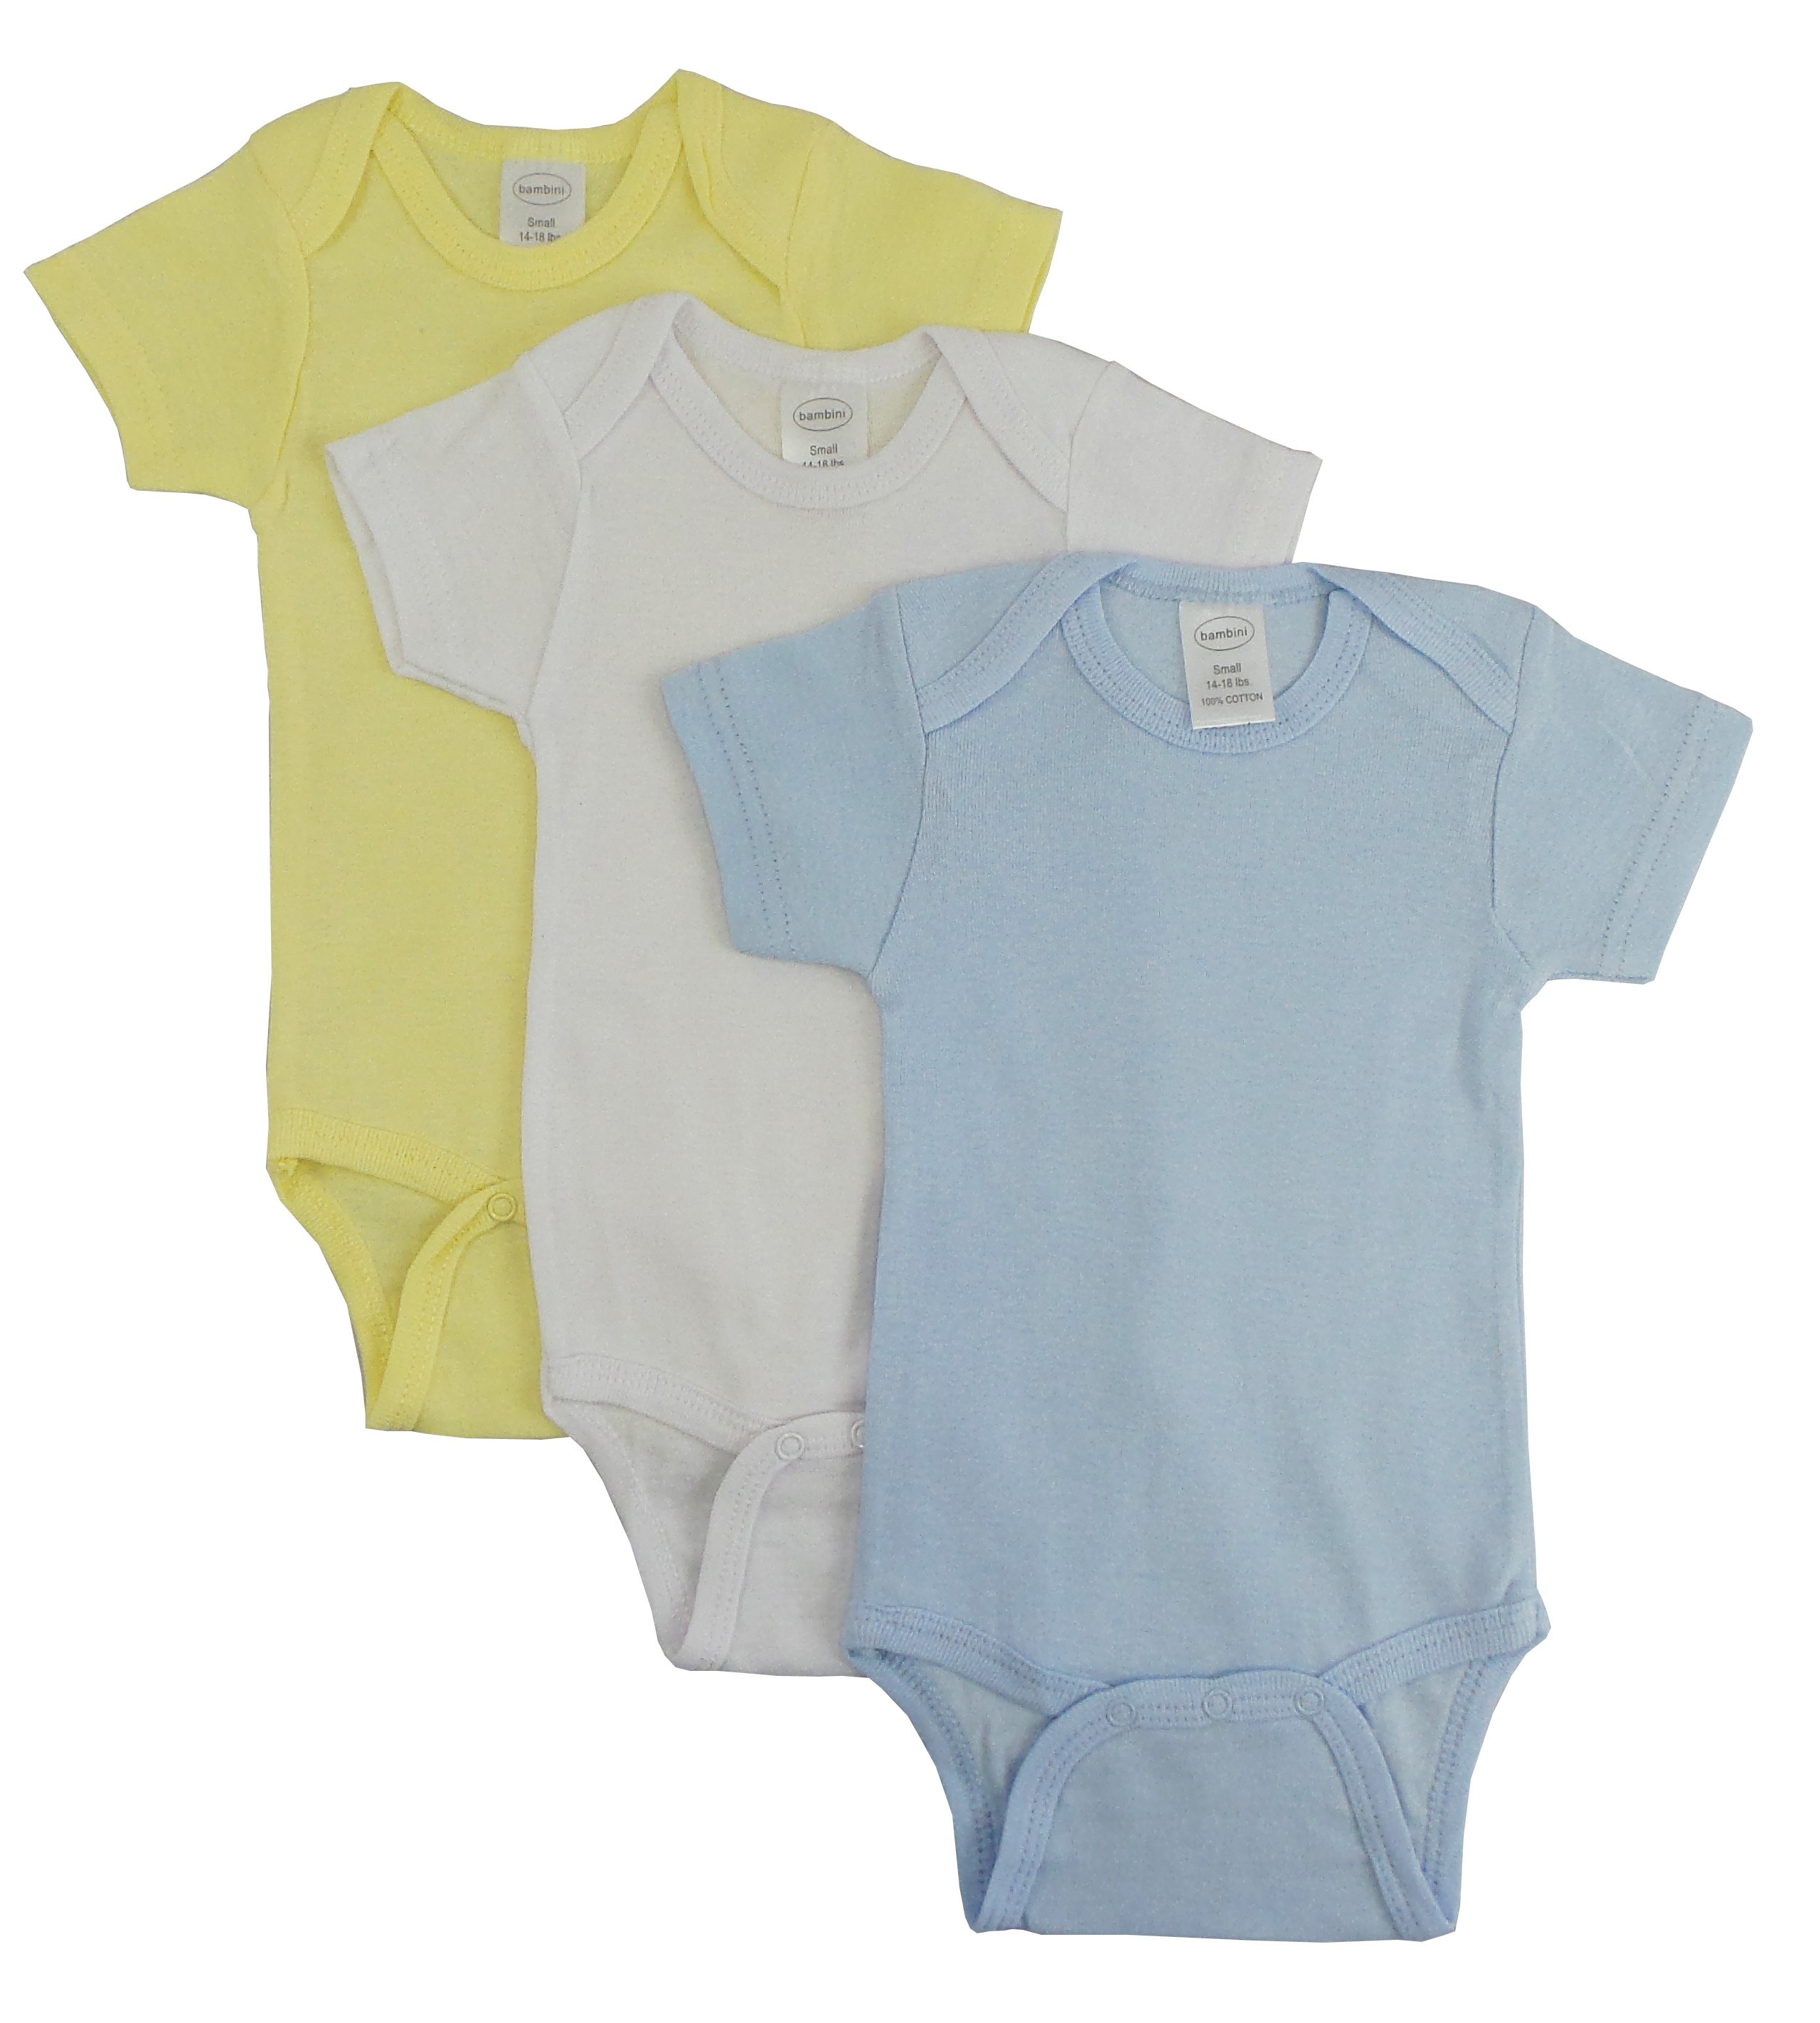 2a5f481f3 wholesale baby onezies in a variety of sizes and colors directly ...